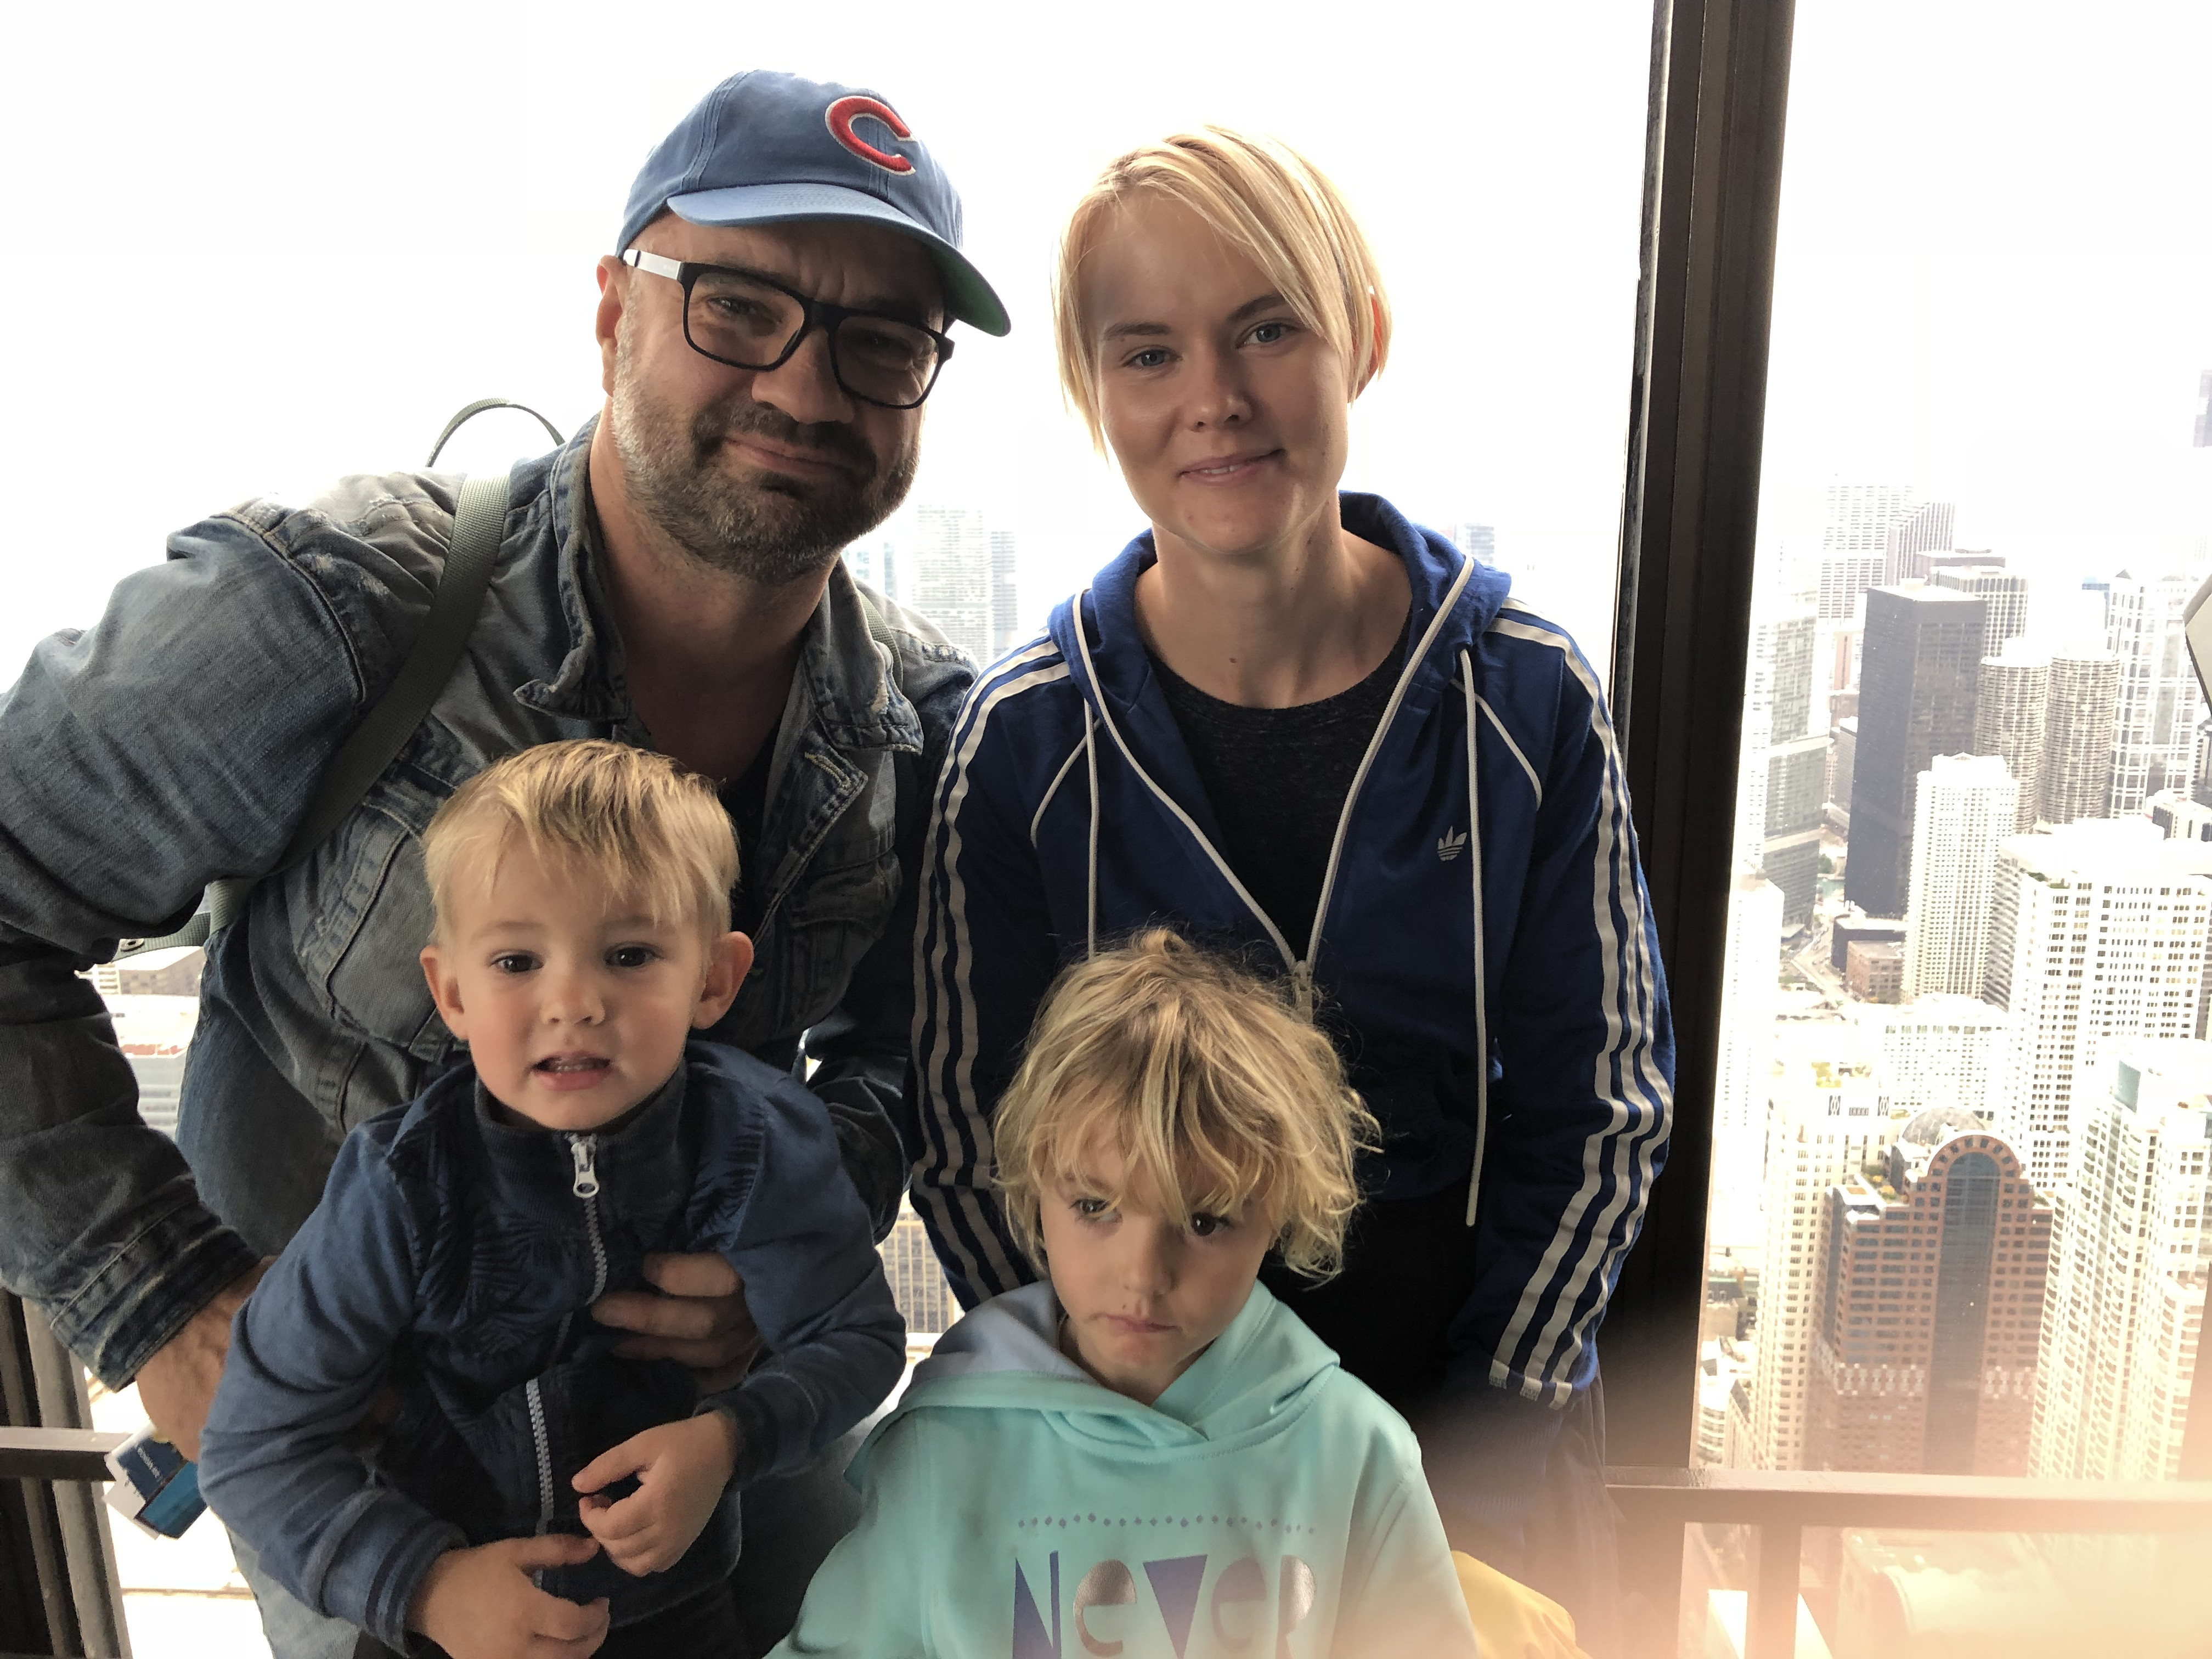 Mihkel and his family: wife Liina, daughter Mirjam and son Joosep, at the observation deck of one of the highest buildings in Chicago, the John Hancock tower.